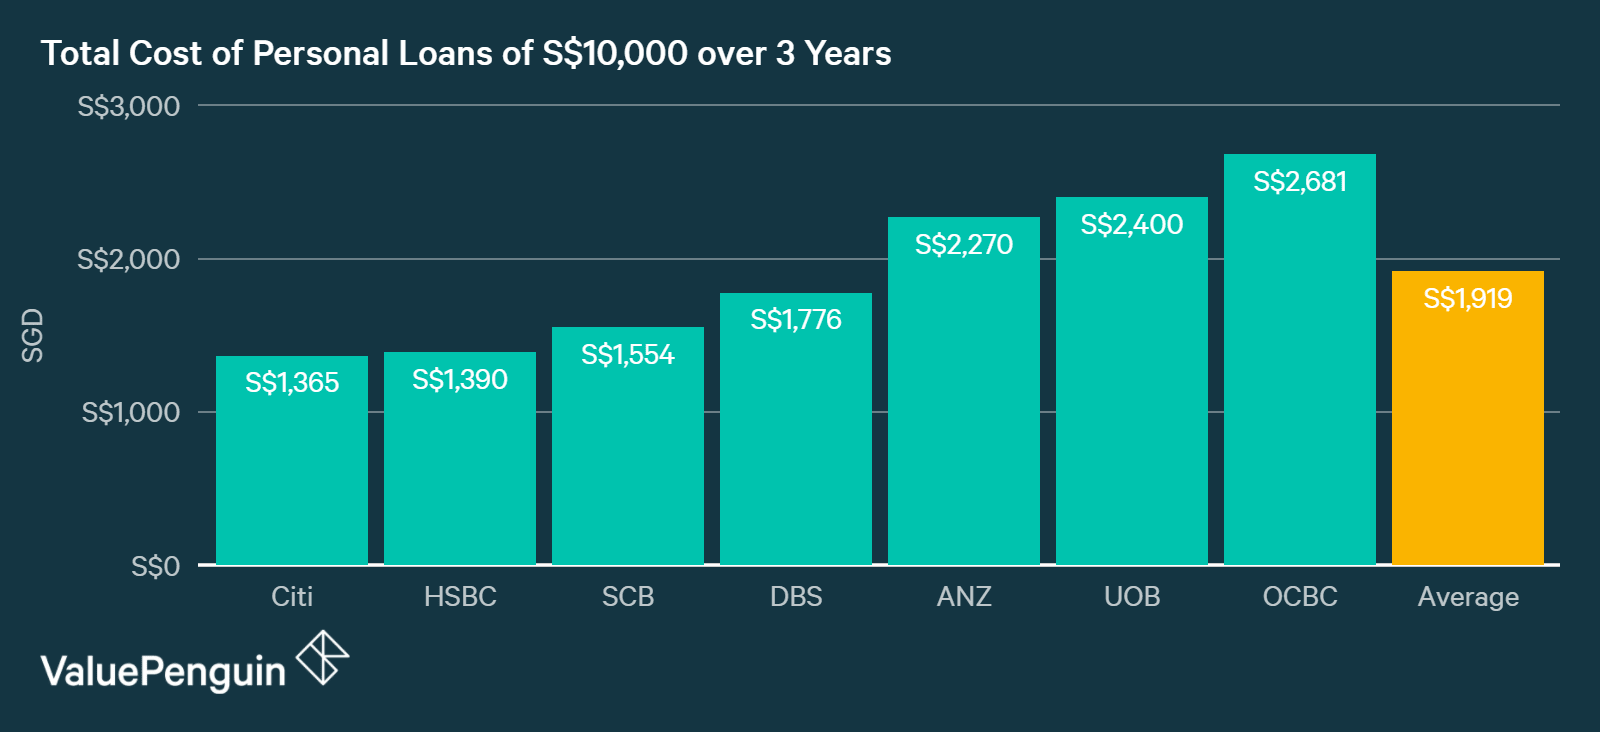 Comparing the total cost of personal loans from every bank in Singapore in terms of interest payment, assuming S$10,000 of personal loan over 3 years